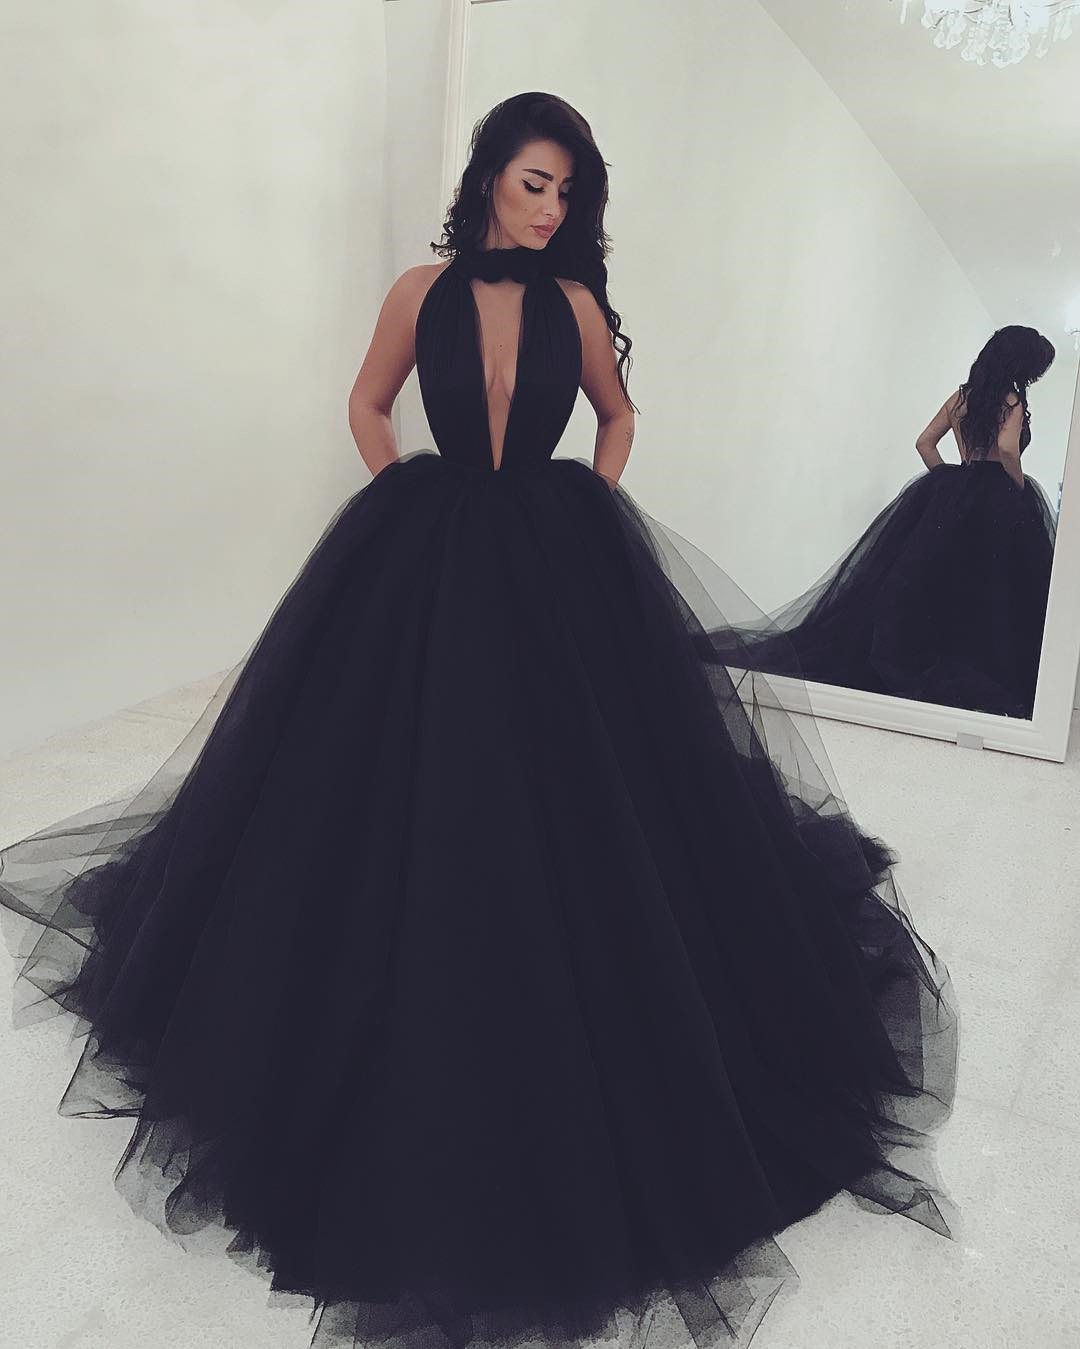 New Arrival Prom Dress,Modest Prom Dress,prom dresses,black prom dresses,ball gowns prom dress,sexy prom dress,long formal dress,prom dress 2017